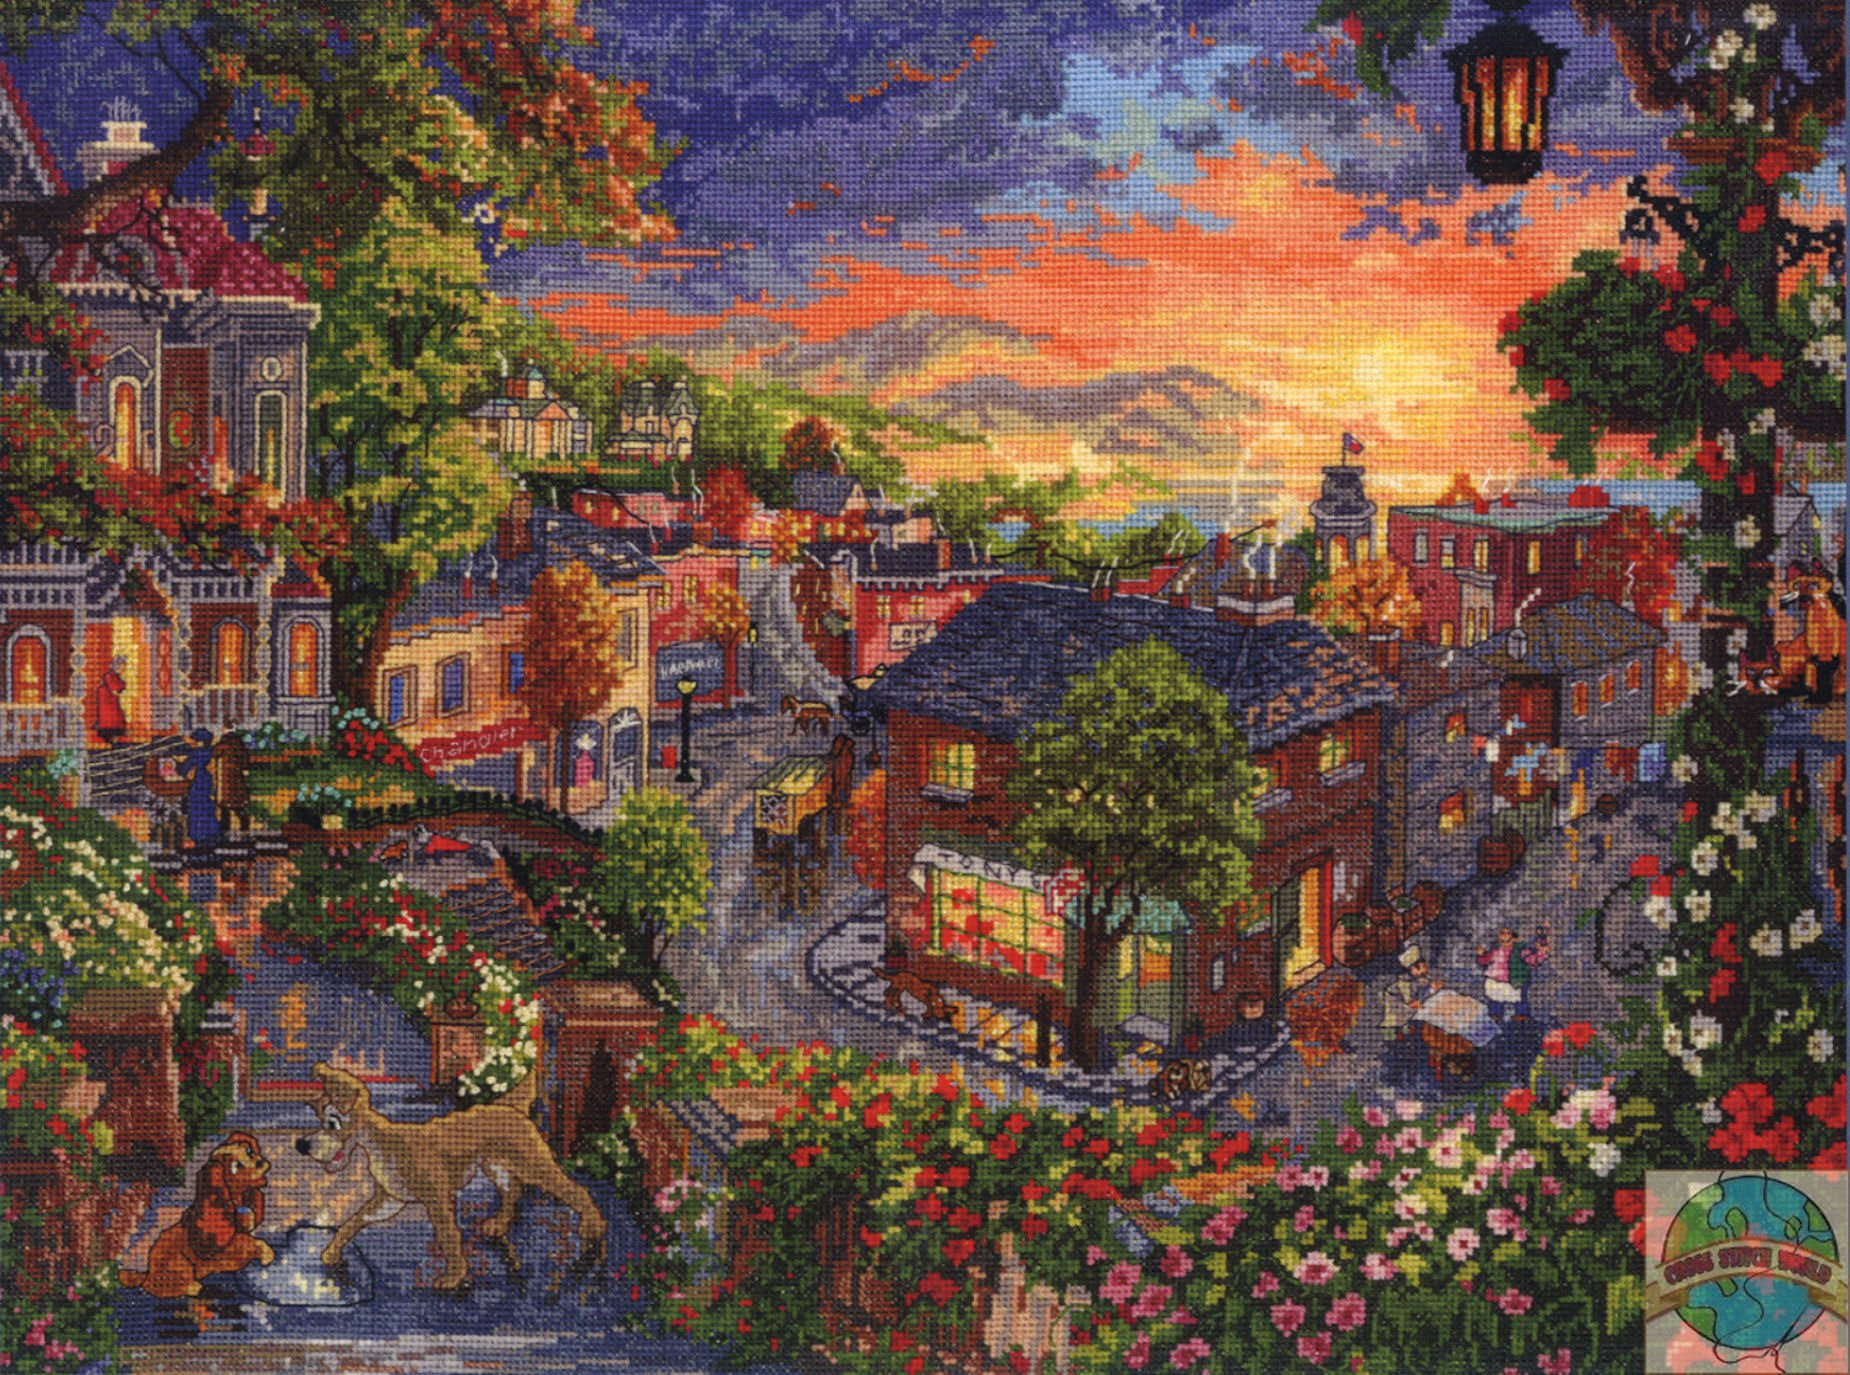 Thomas Kinkade Disney Wallpaper Tangled images 1850x1375